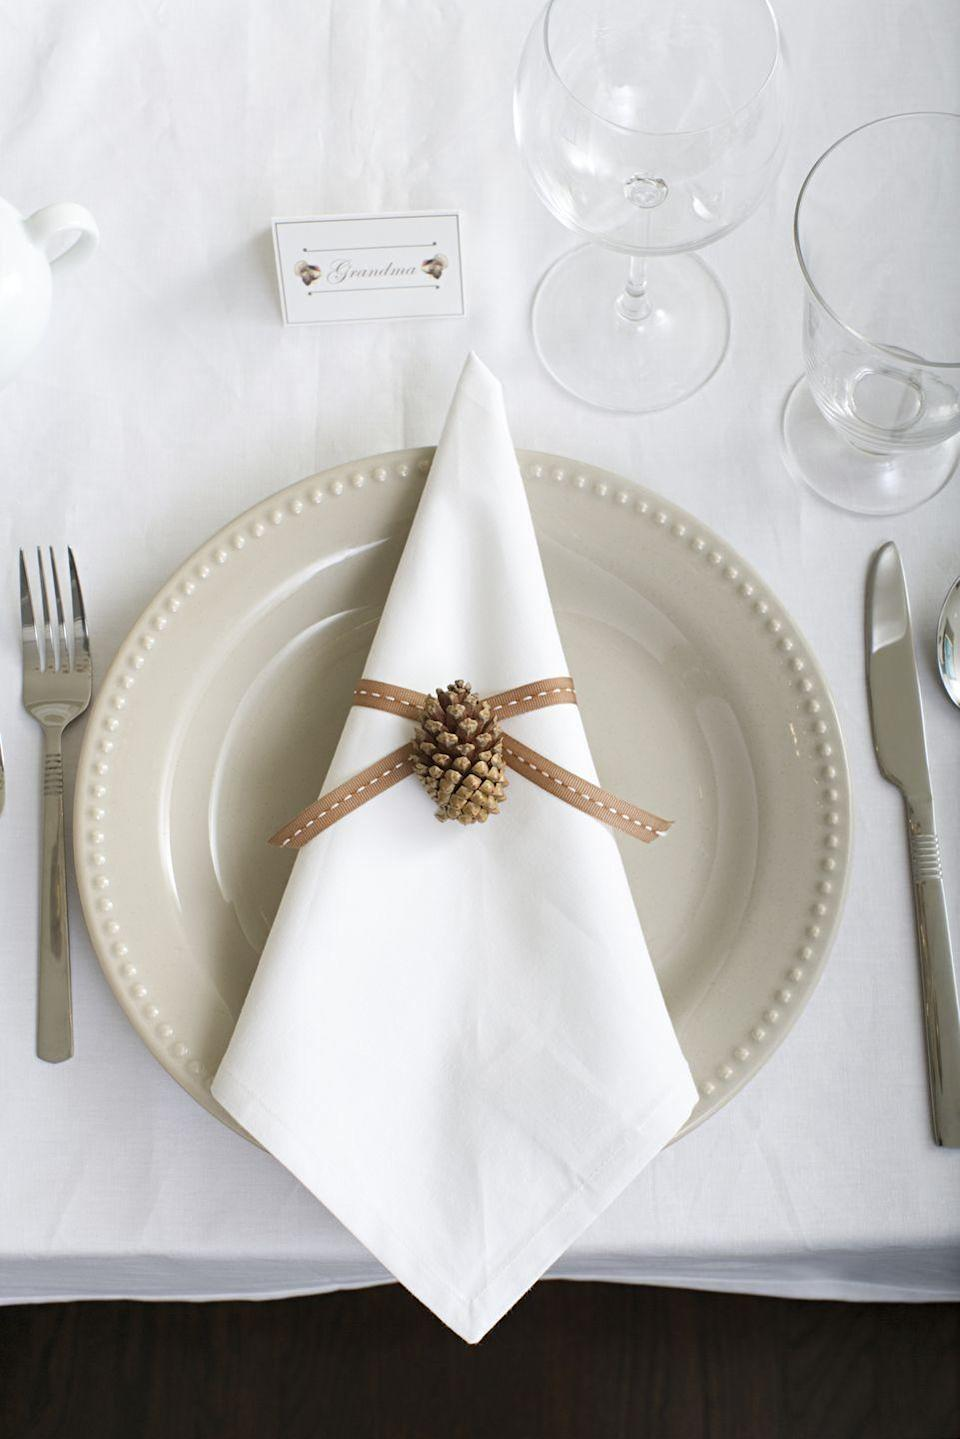 """<p>Thanksgiving is classically a time of bounty, which makes understated decor a breath of fresh air for the Thanksgiving table. A single seasonal touch like a pretty ribbon, leaf, or pine cone can add just the right touch of autumn and lets the rest of your set up take center stage. </p><p><a class=""""link rapid-noclick-resp"""" href=""""https://www.amazon.com/Reliant-Ribbon-25133-055-03K-Grosgrain-Saddle/dp/B07V3SSHX1/ref=sr_1_1?tag=syn-yahoo-20&ascsubtag=%5Bartid%7C10067.g.13616373%5Bsrc%7Cyahoo-us"""" rel=""""nofollow noopener"""" target=""""_blank"""" data-ylk=""""slk:SHOP NOW"""">SHOP NOW</a> <em>Grosgrain Ribbon, $17.33</em></p>"""